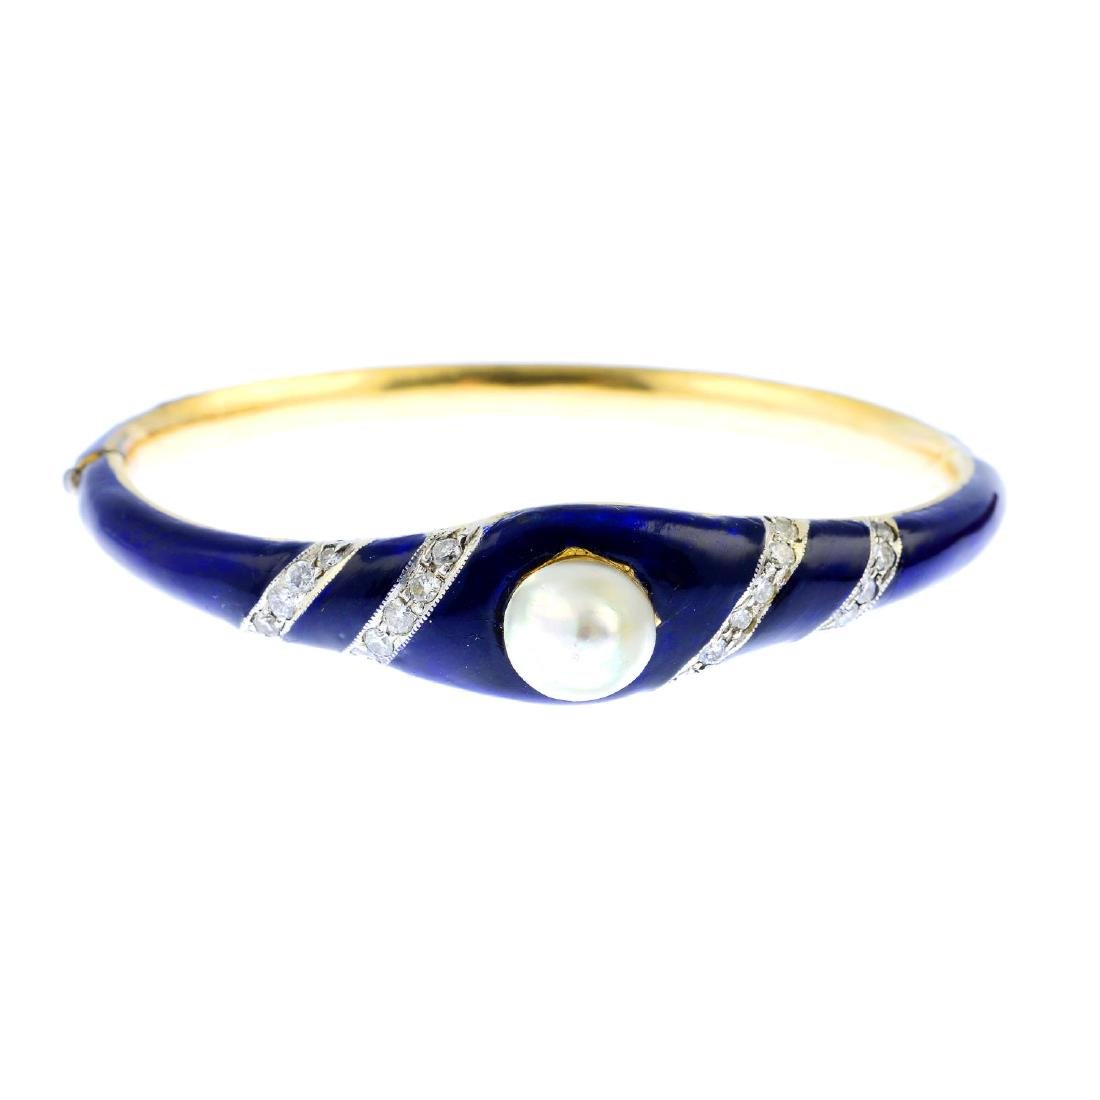 A cultured pearl, diamond and enamel bangle. The